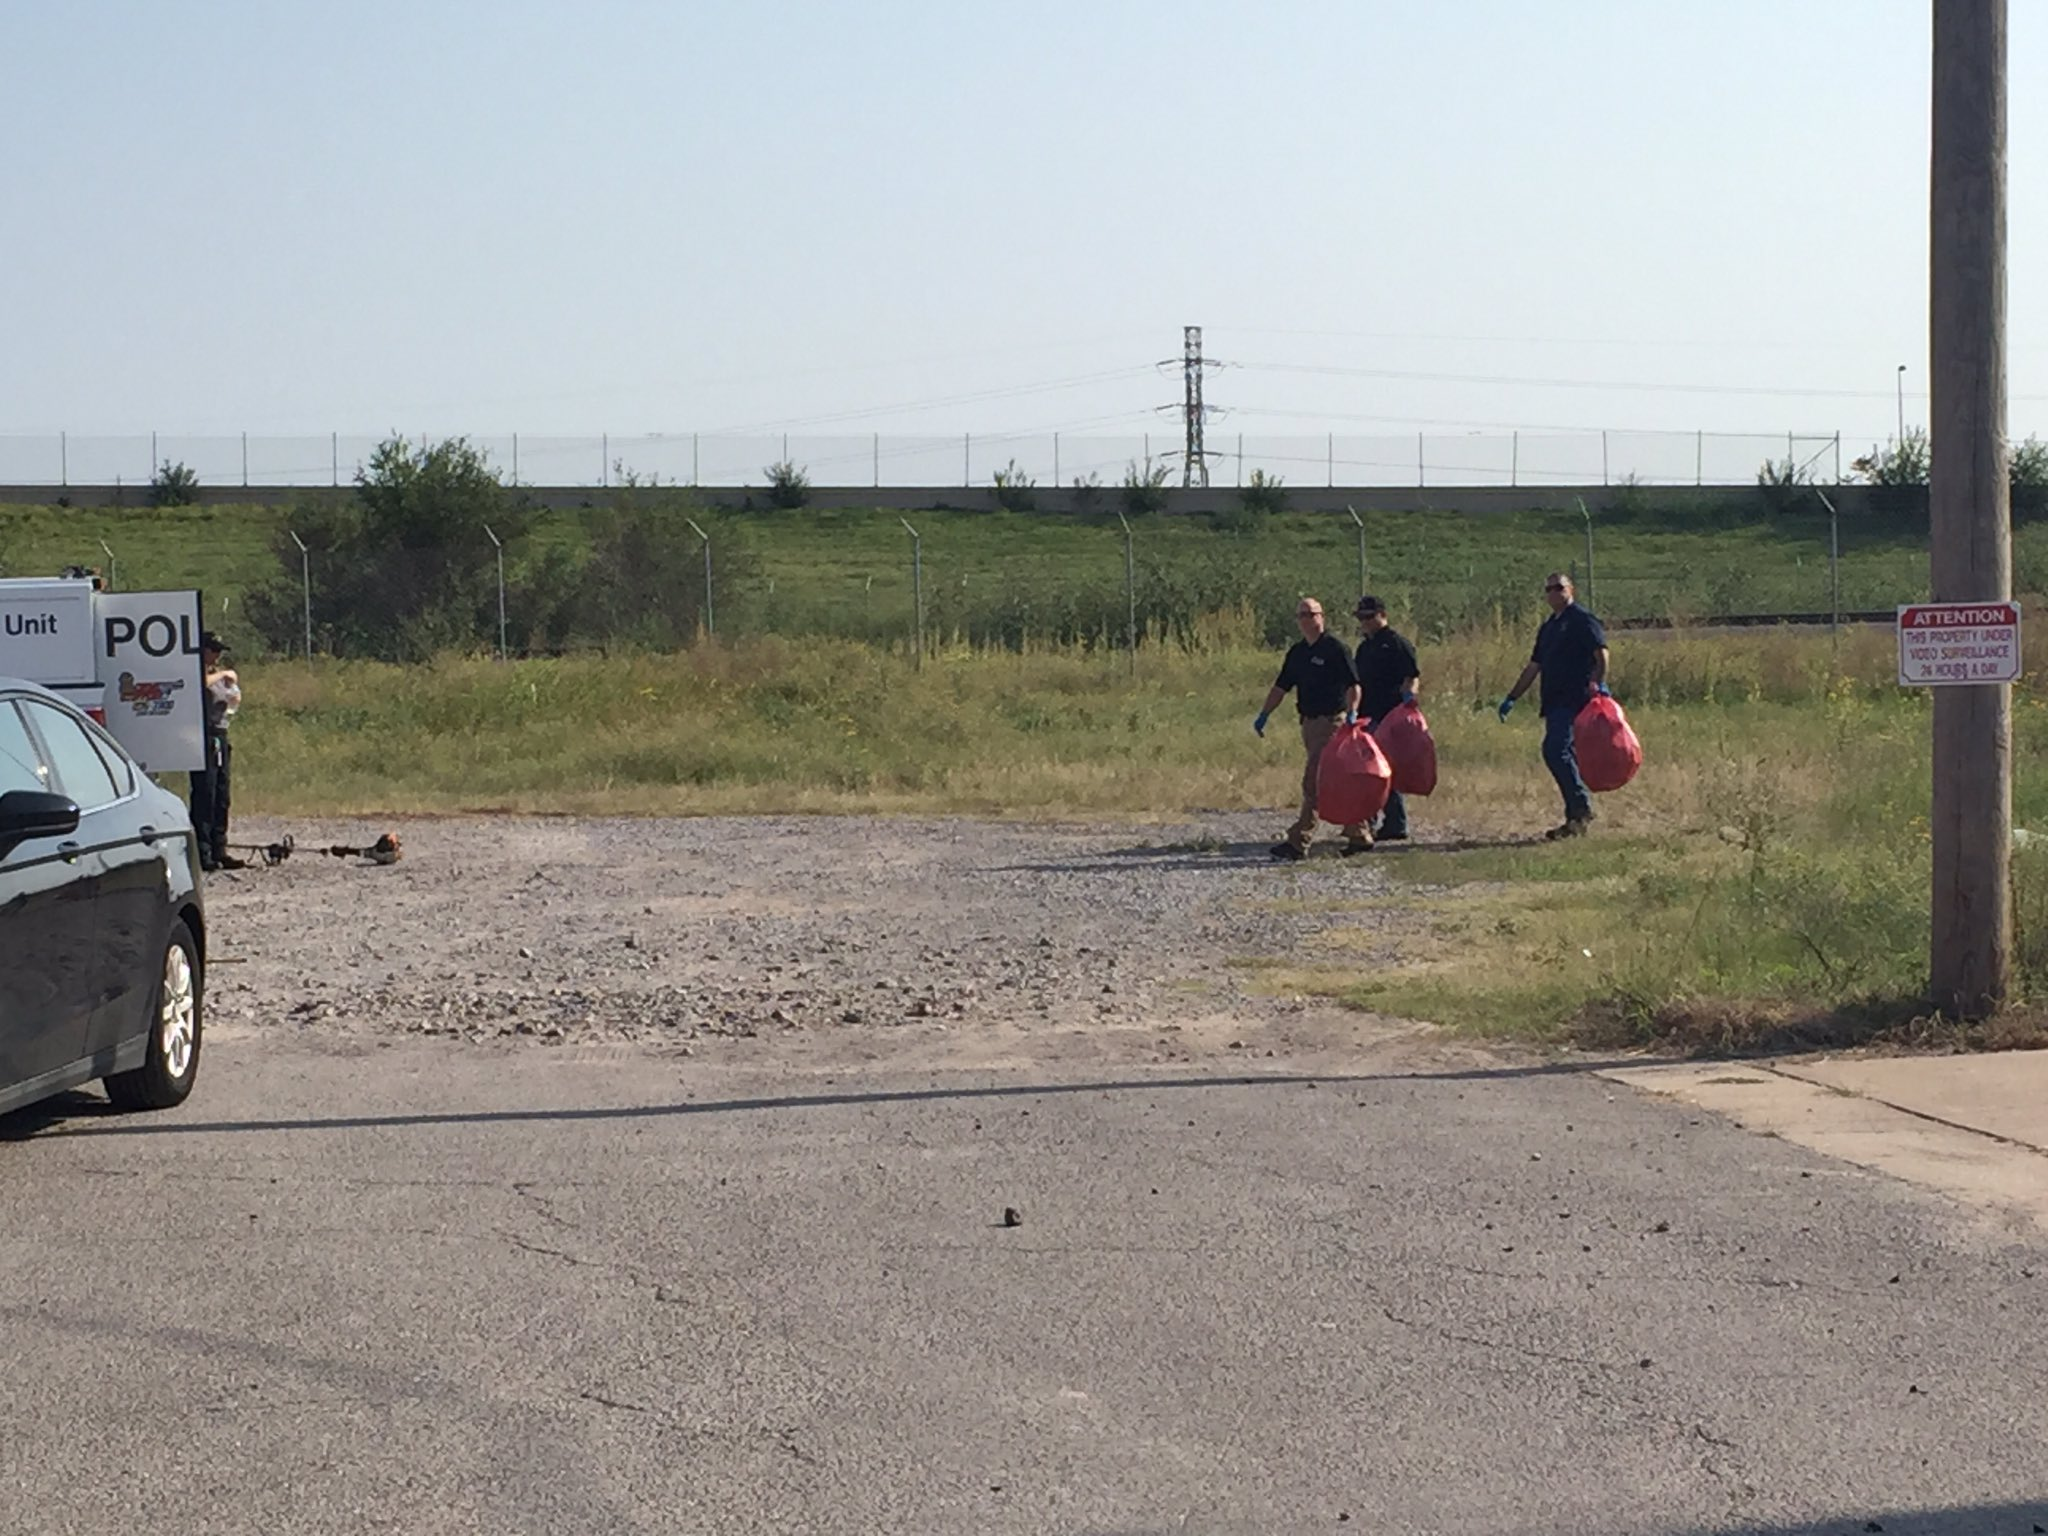 Officers are walking away from the scene carry red (what looks like bio-hazard) bags.  (Jordann Lucero / KOKH)